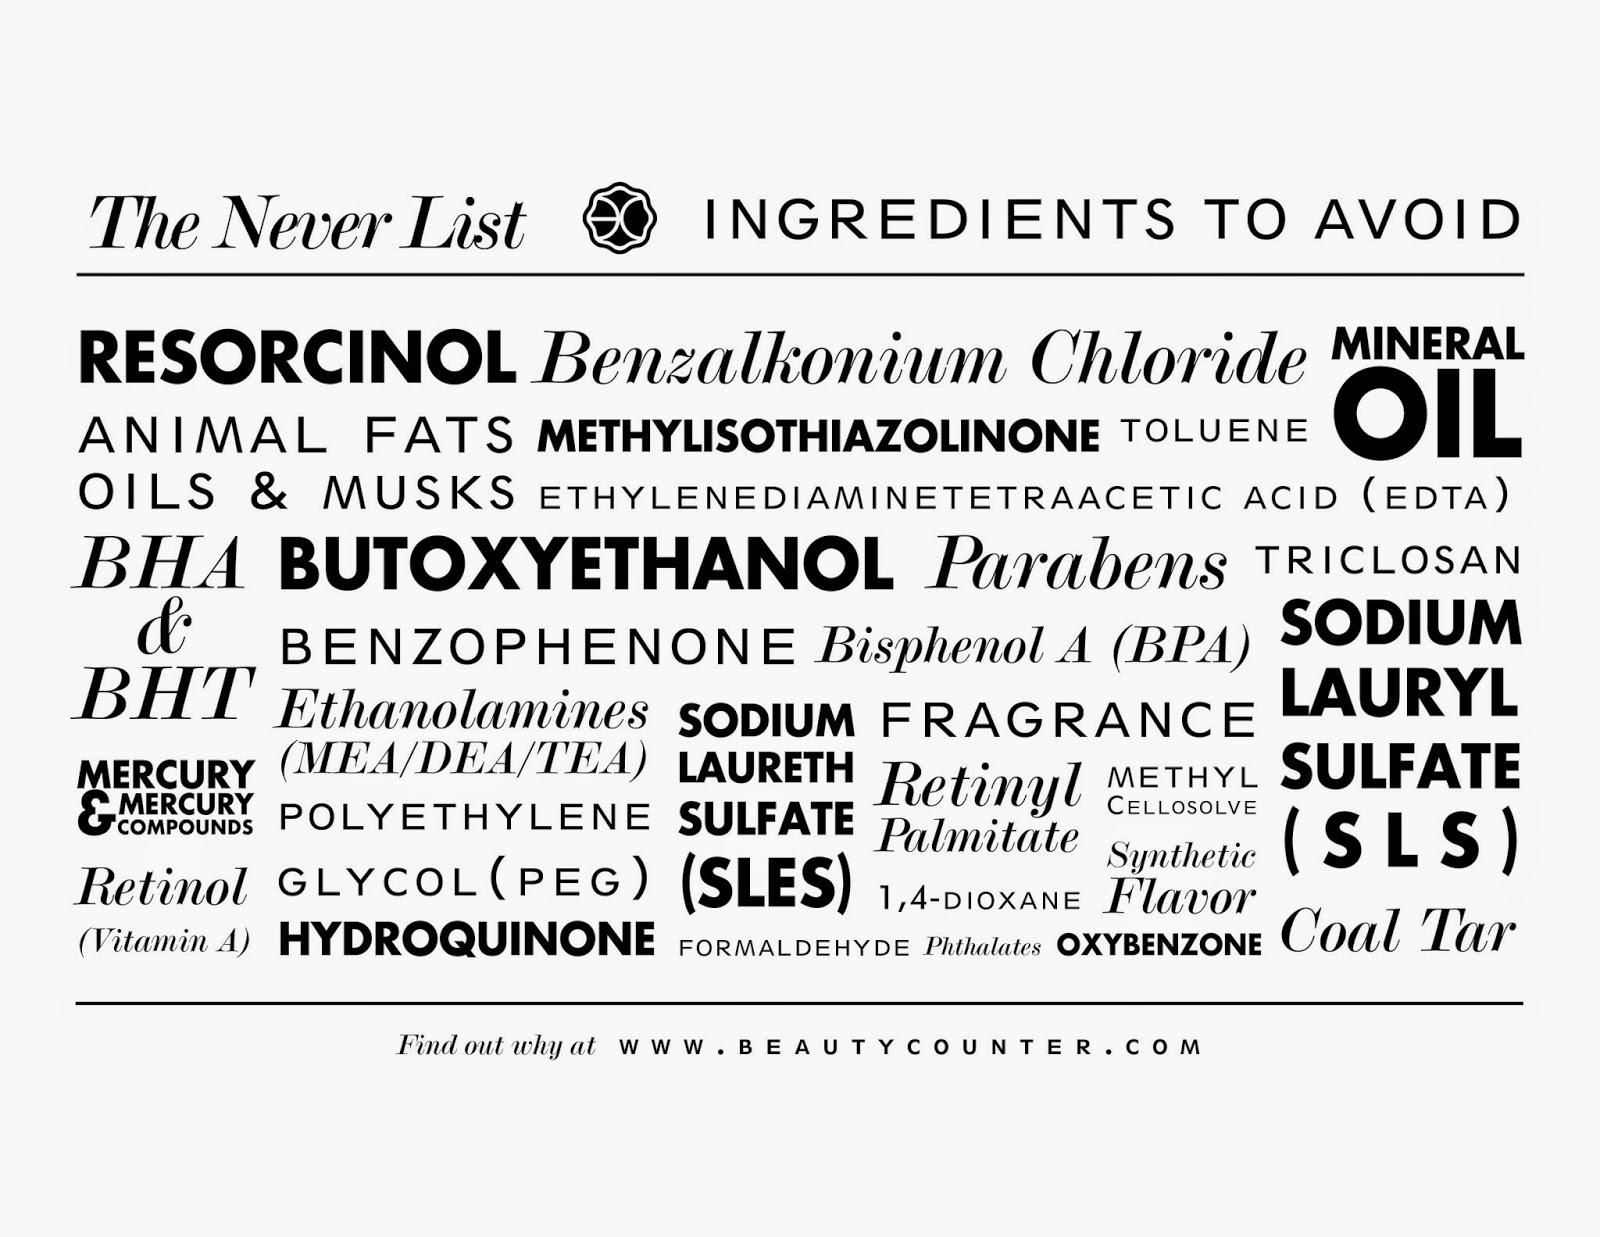 The Beauty Counter - The Never List - Ingredients to Avoid